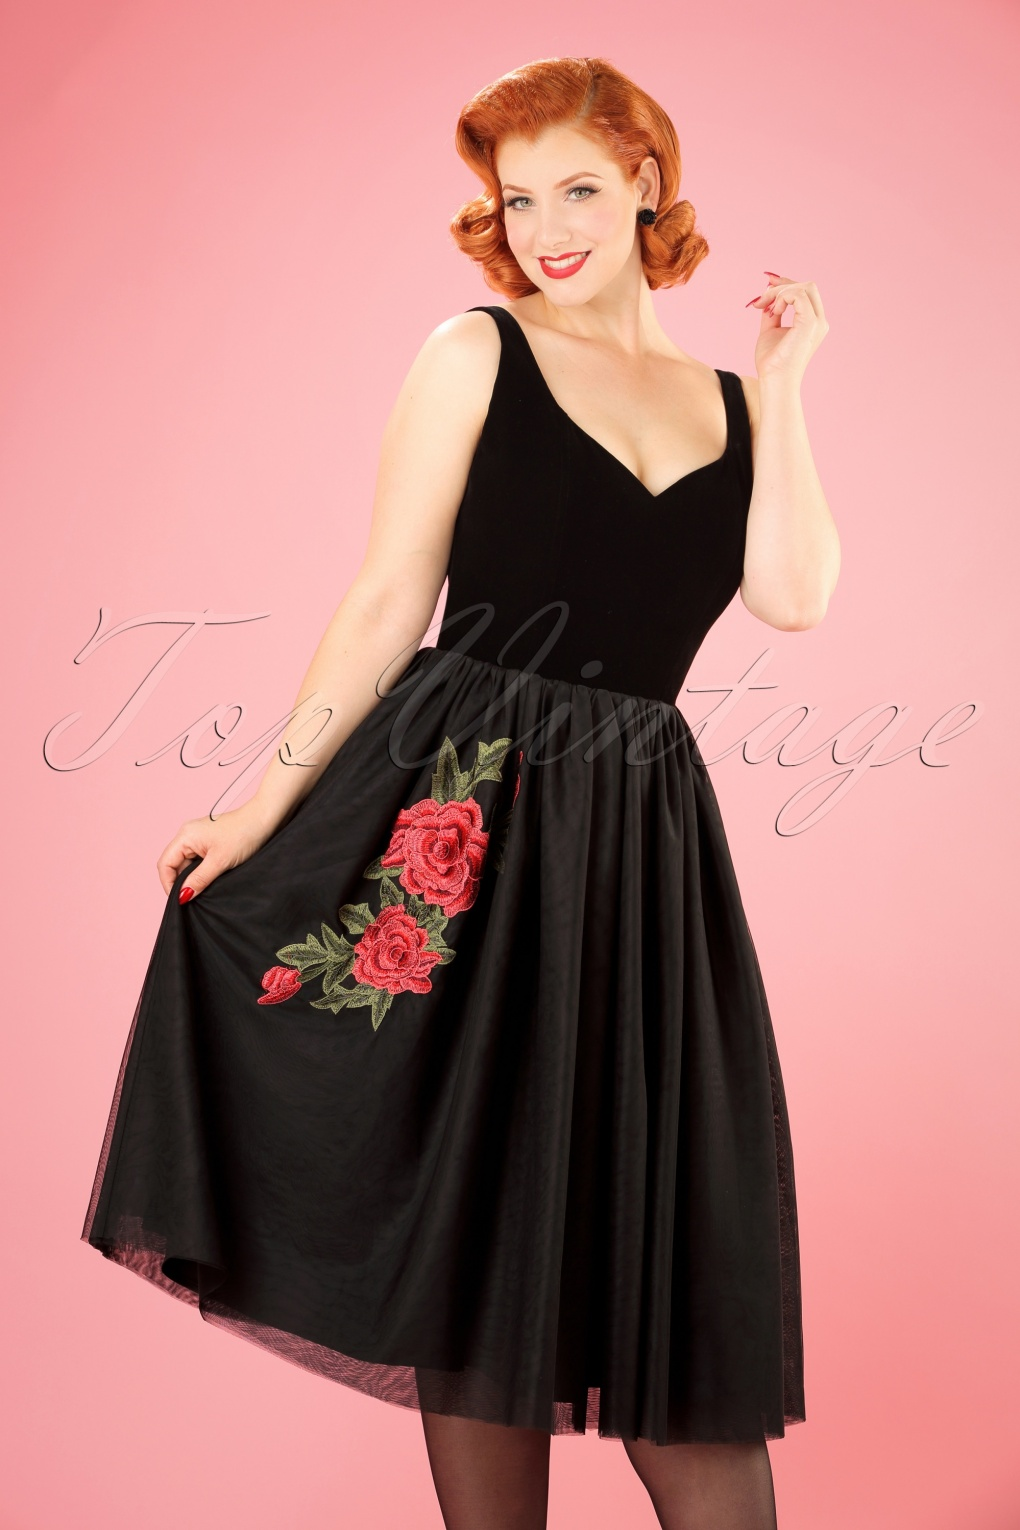 1950s Prom Dresses & Party Dresses 50s Isla Rose Swing Dress in Black £108.34 AT vintagedancer.com